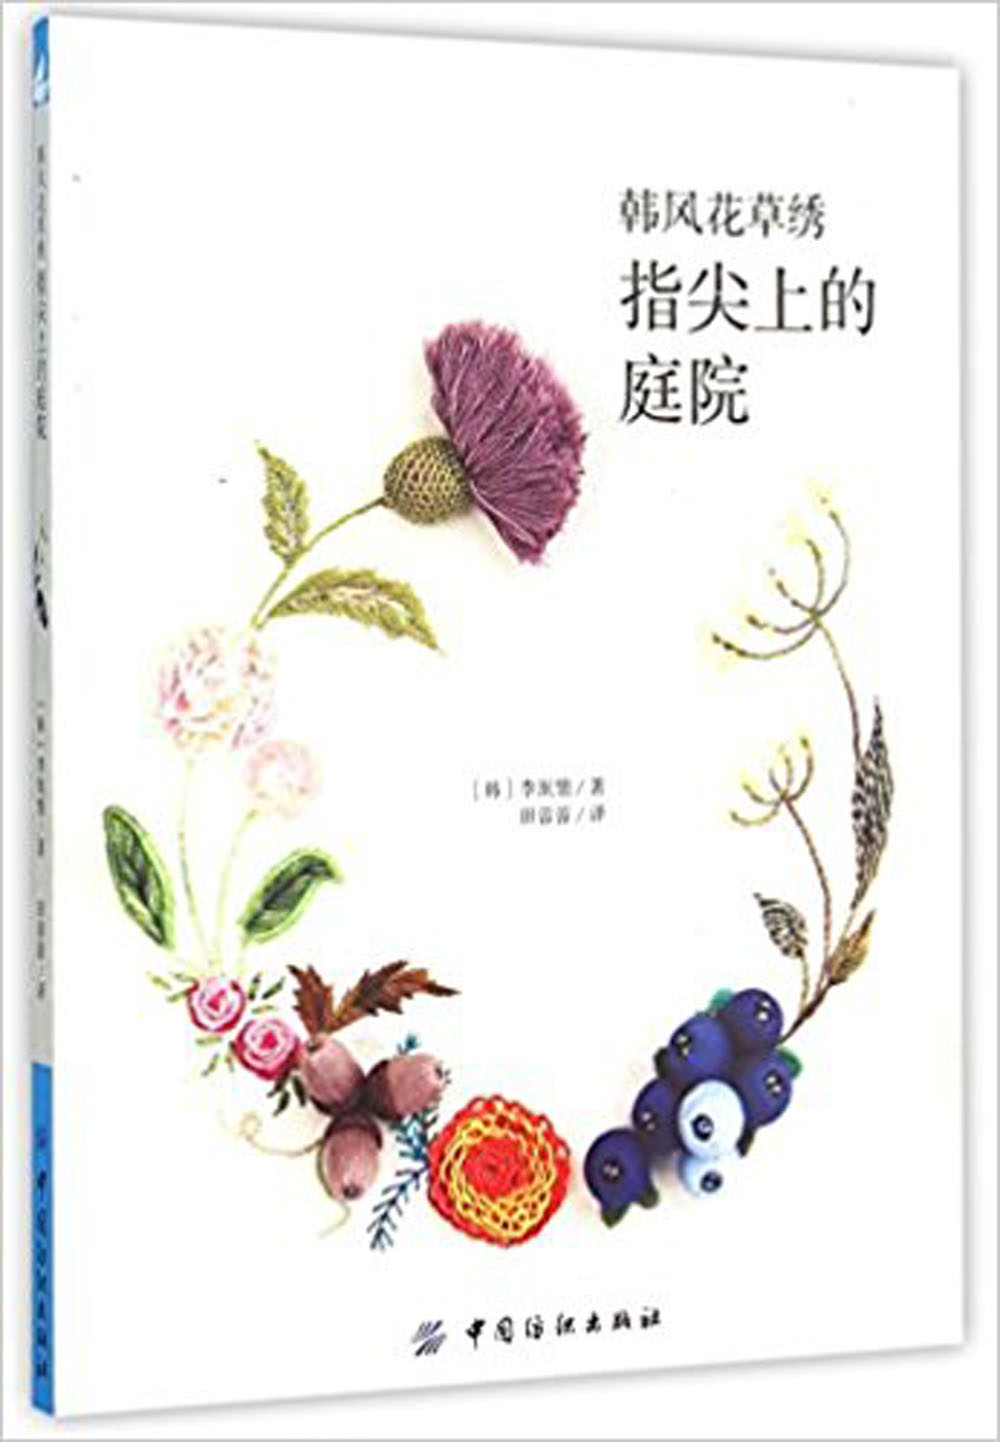 How To Make Korean Style Flower And Plants Embroidery Book / Courtyard On Fingertips Handmade Embroidery Textbook